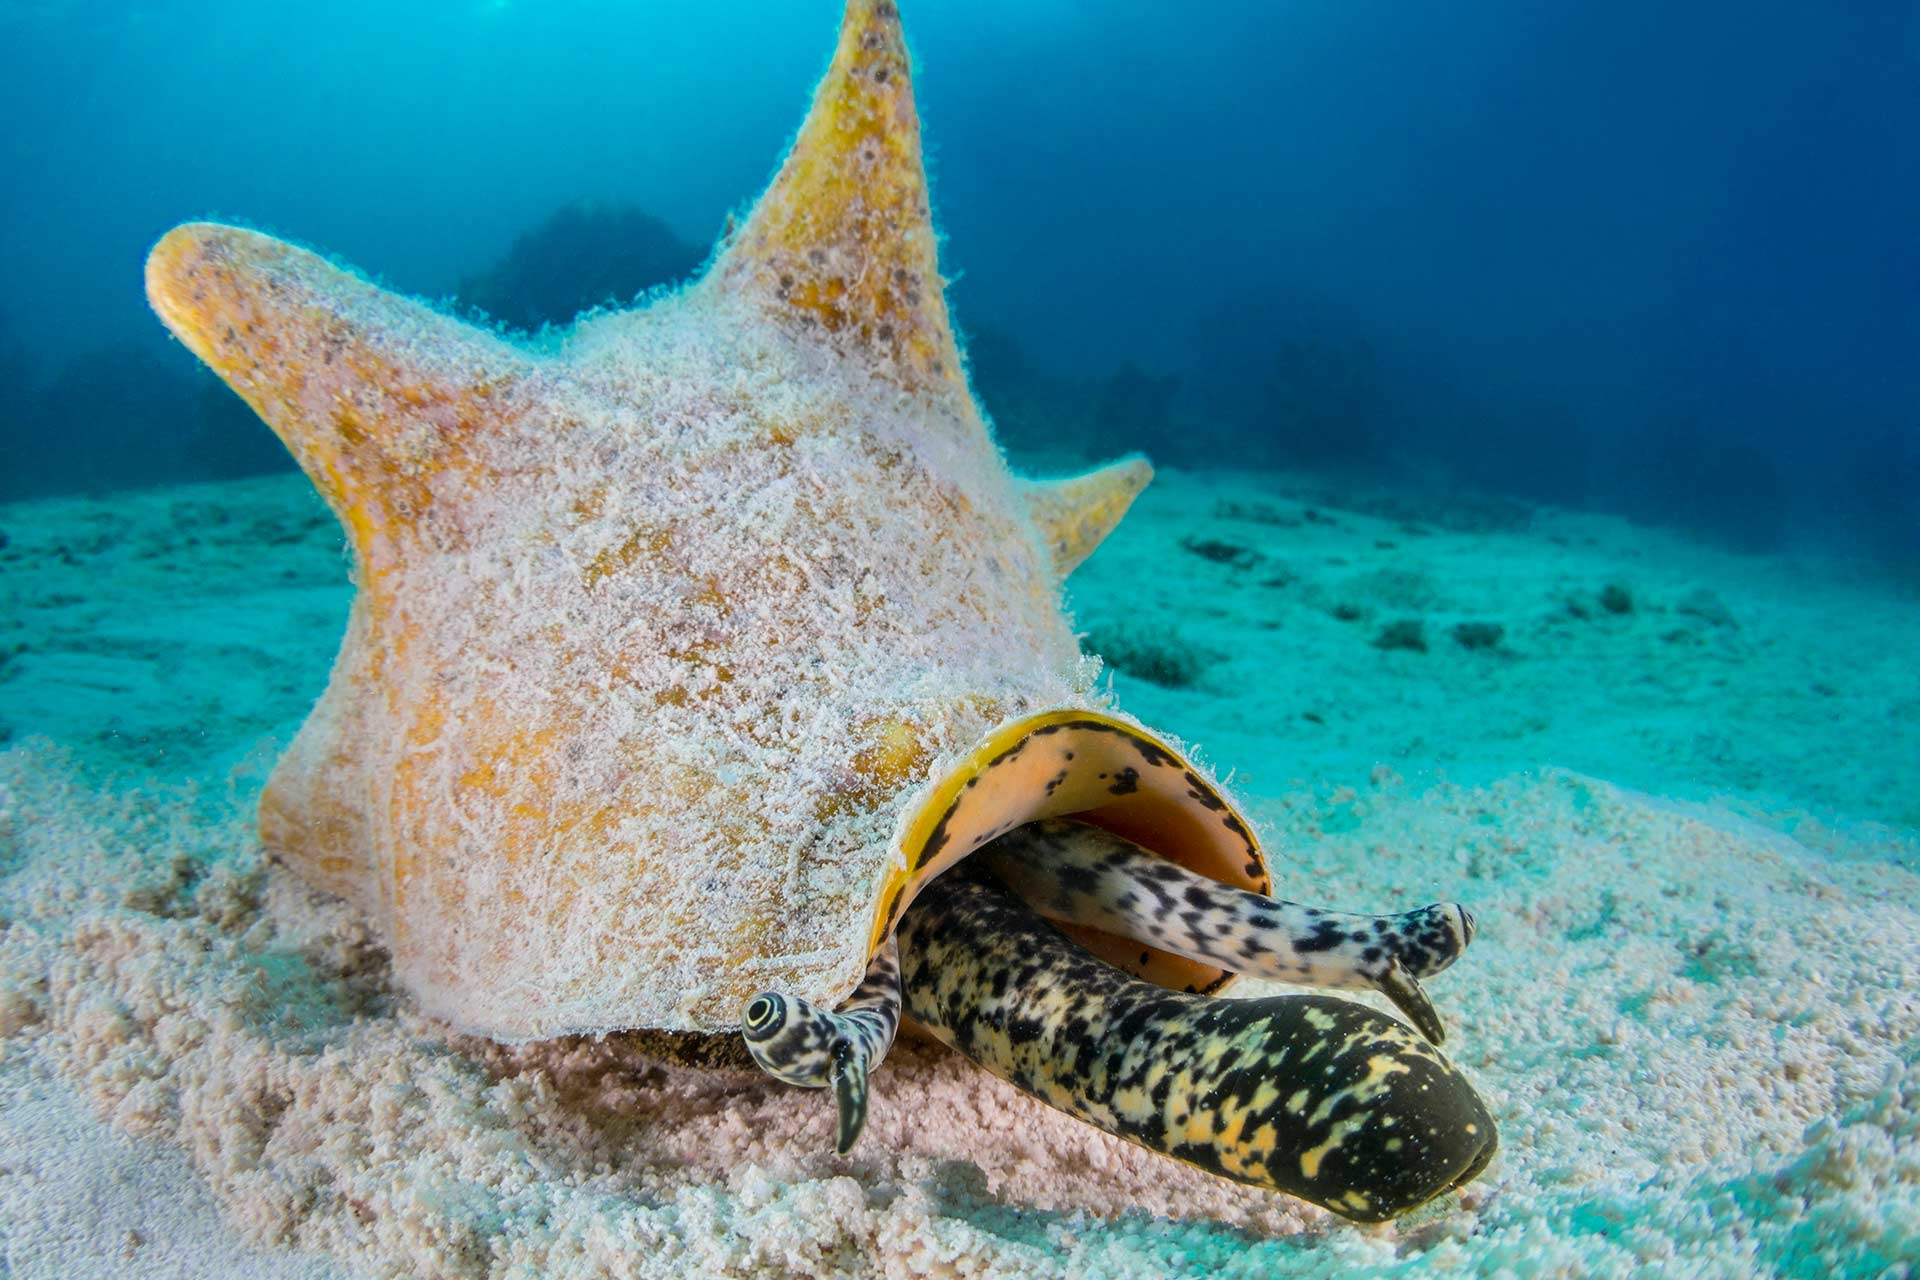 queen conch underwater, moving across sand